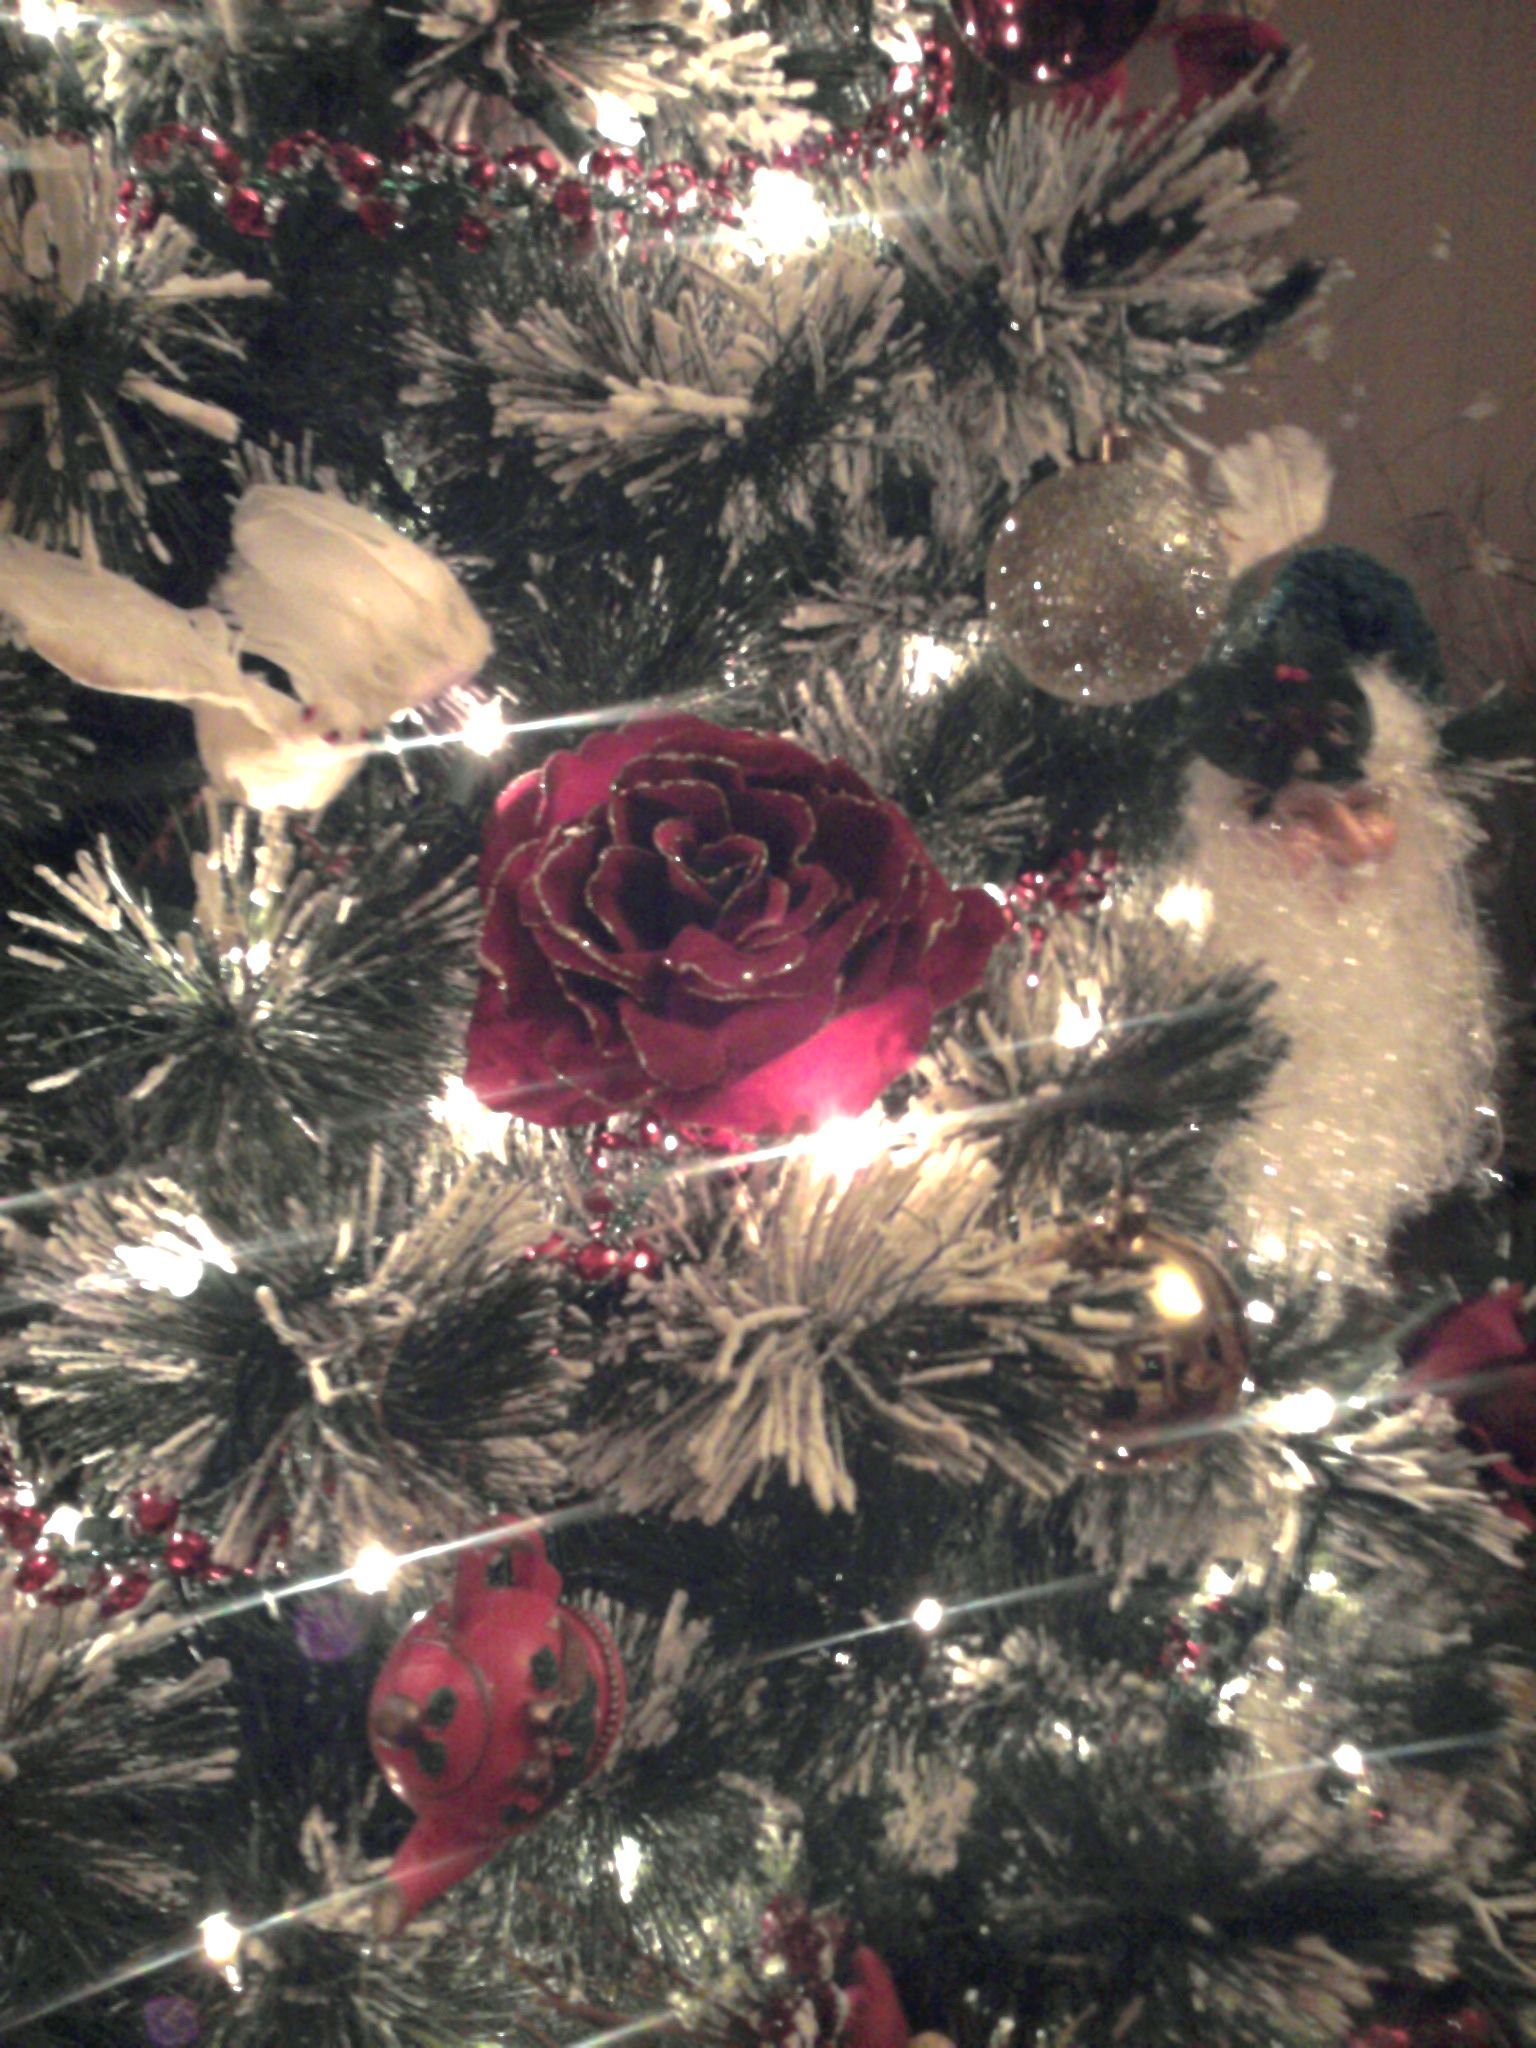 Decorate your Christmas tree with roses and white doves for an elegant look.